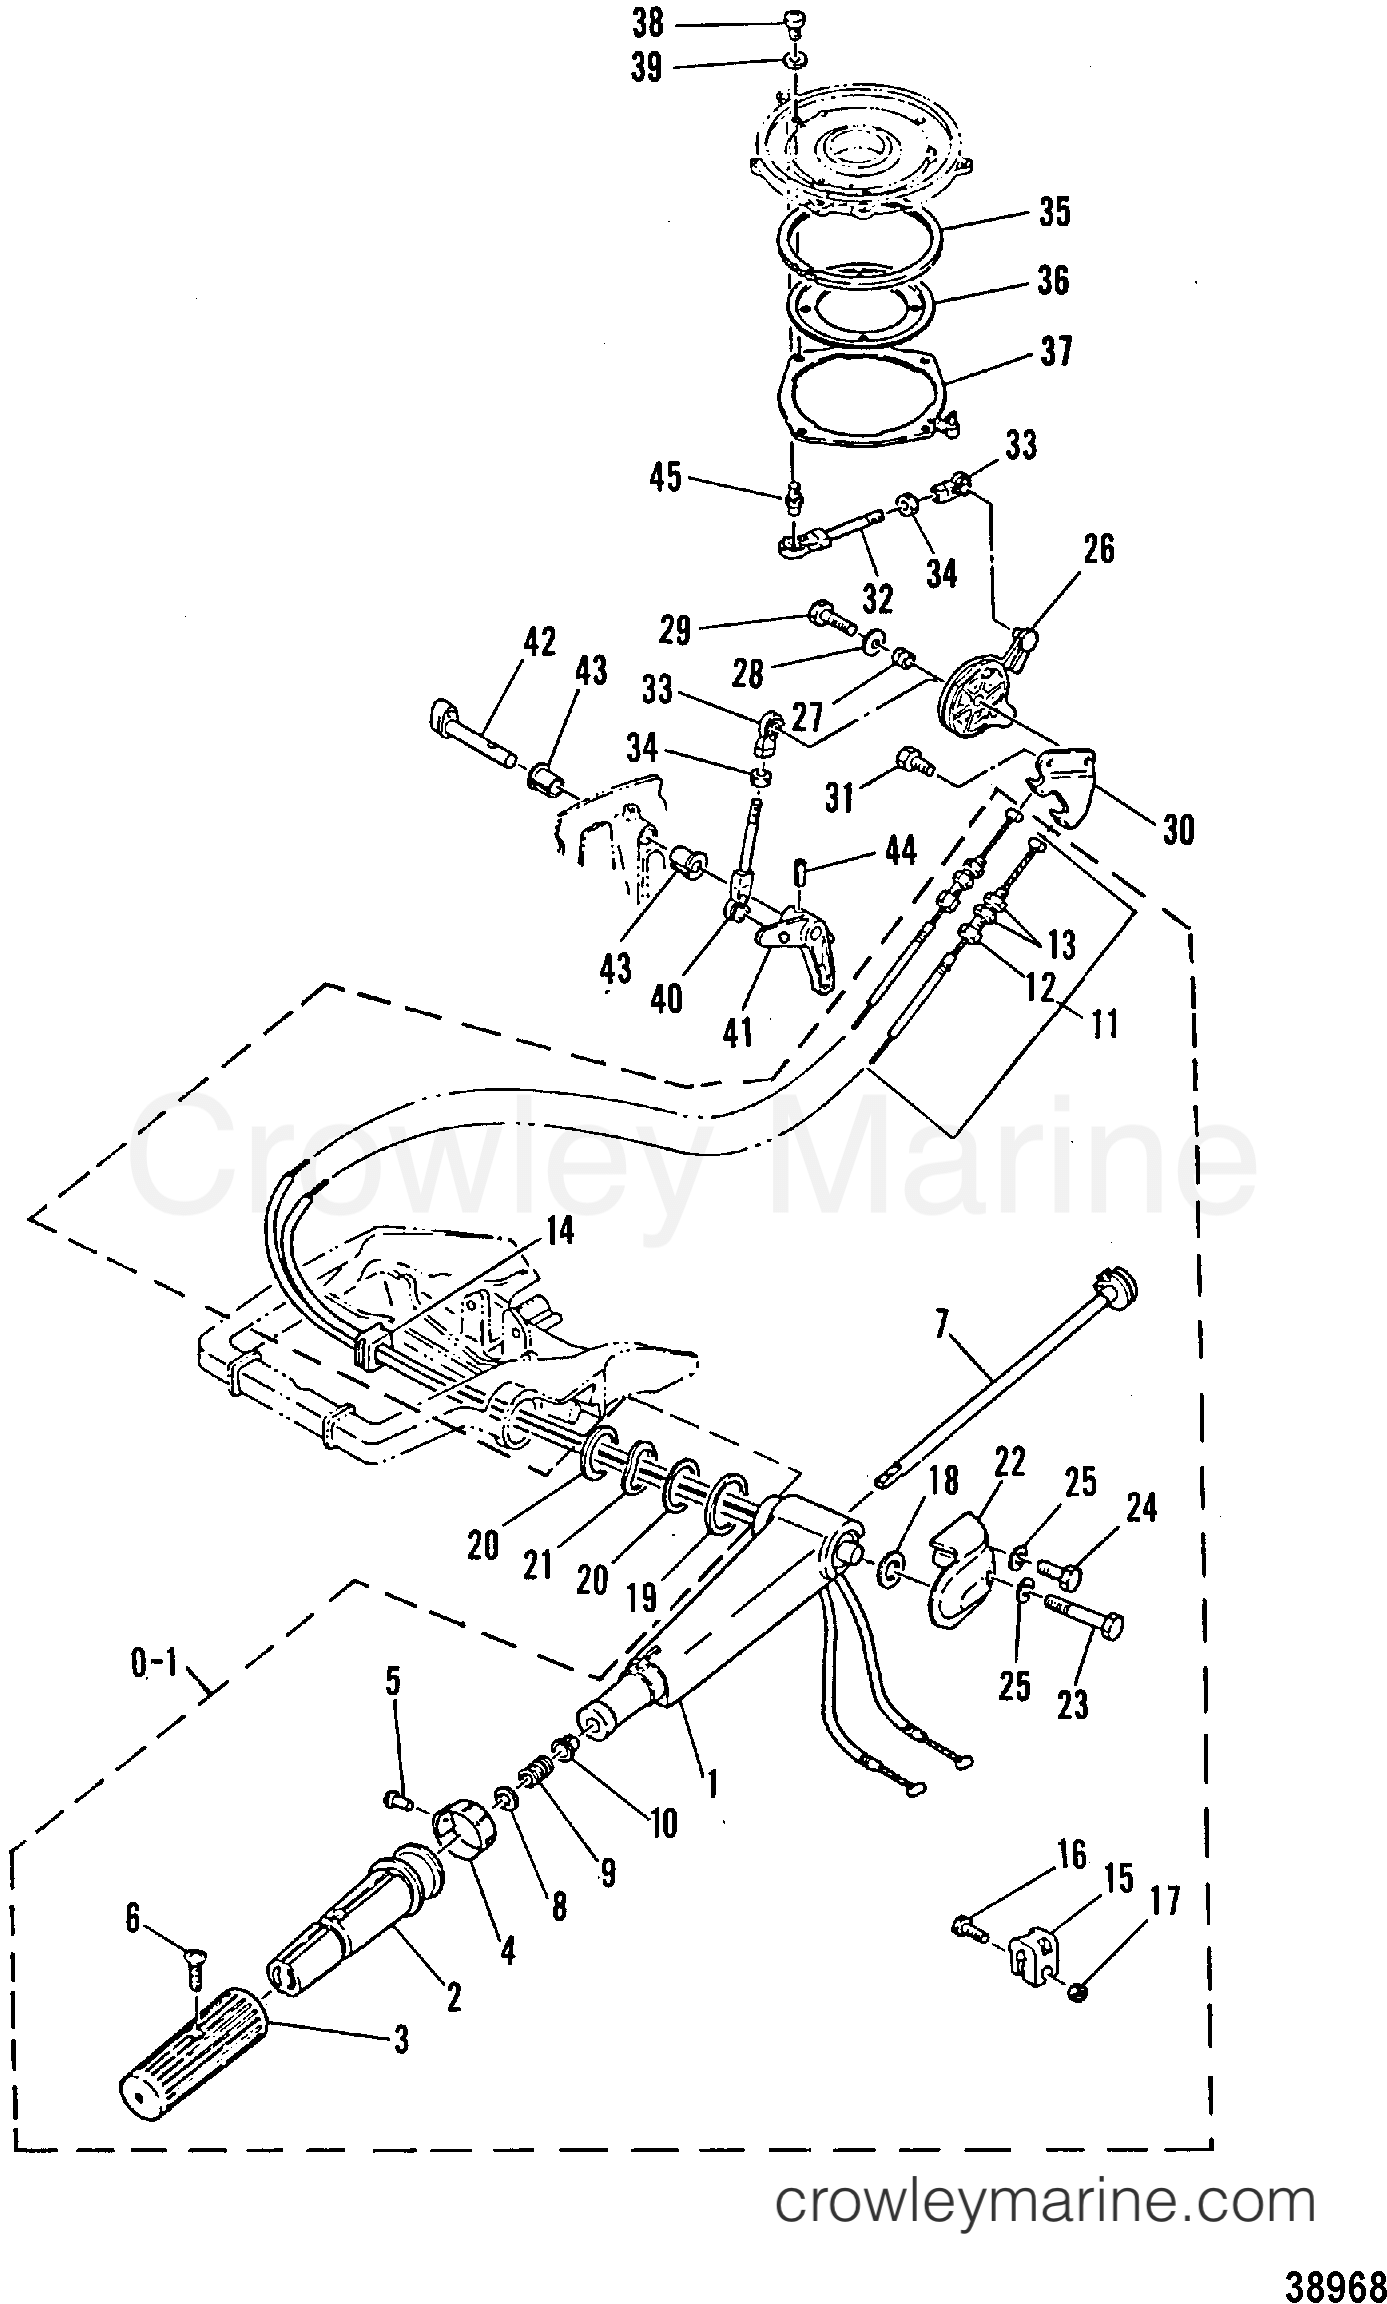 Steering Handle And Throttle Control